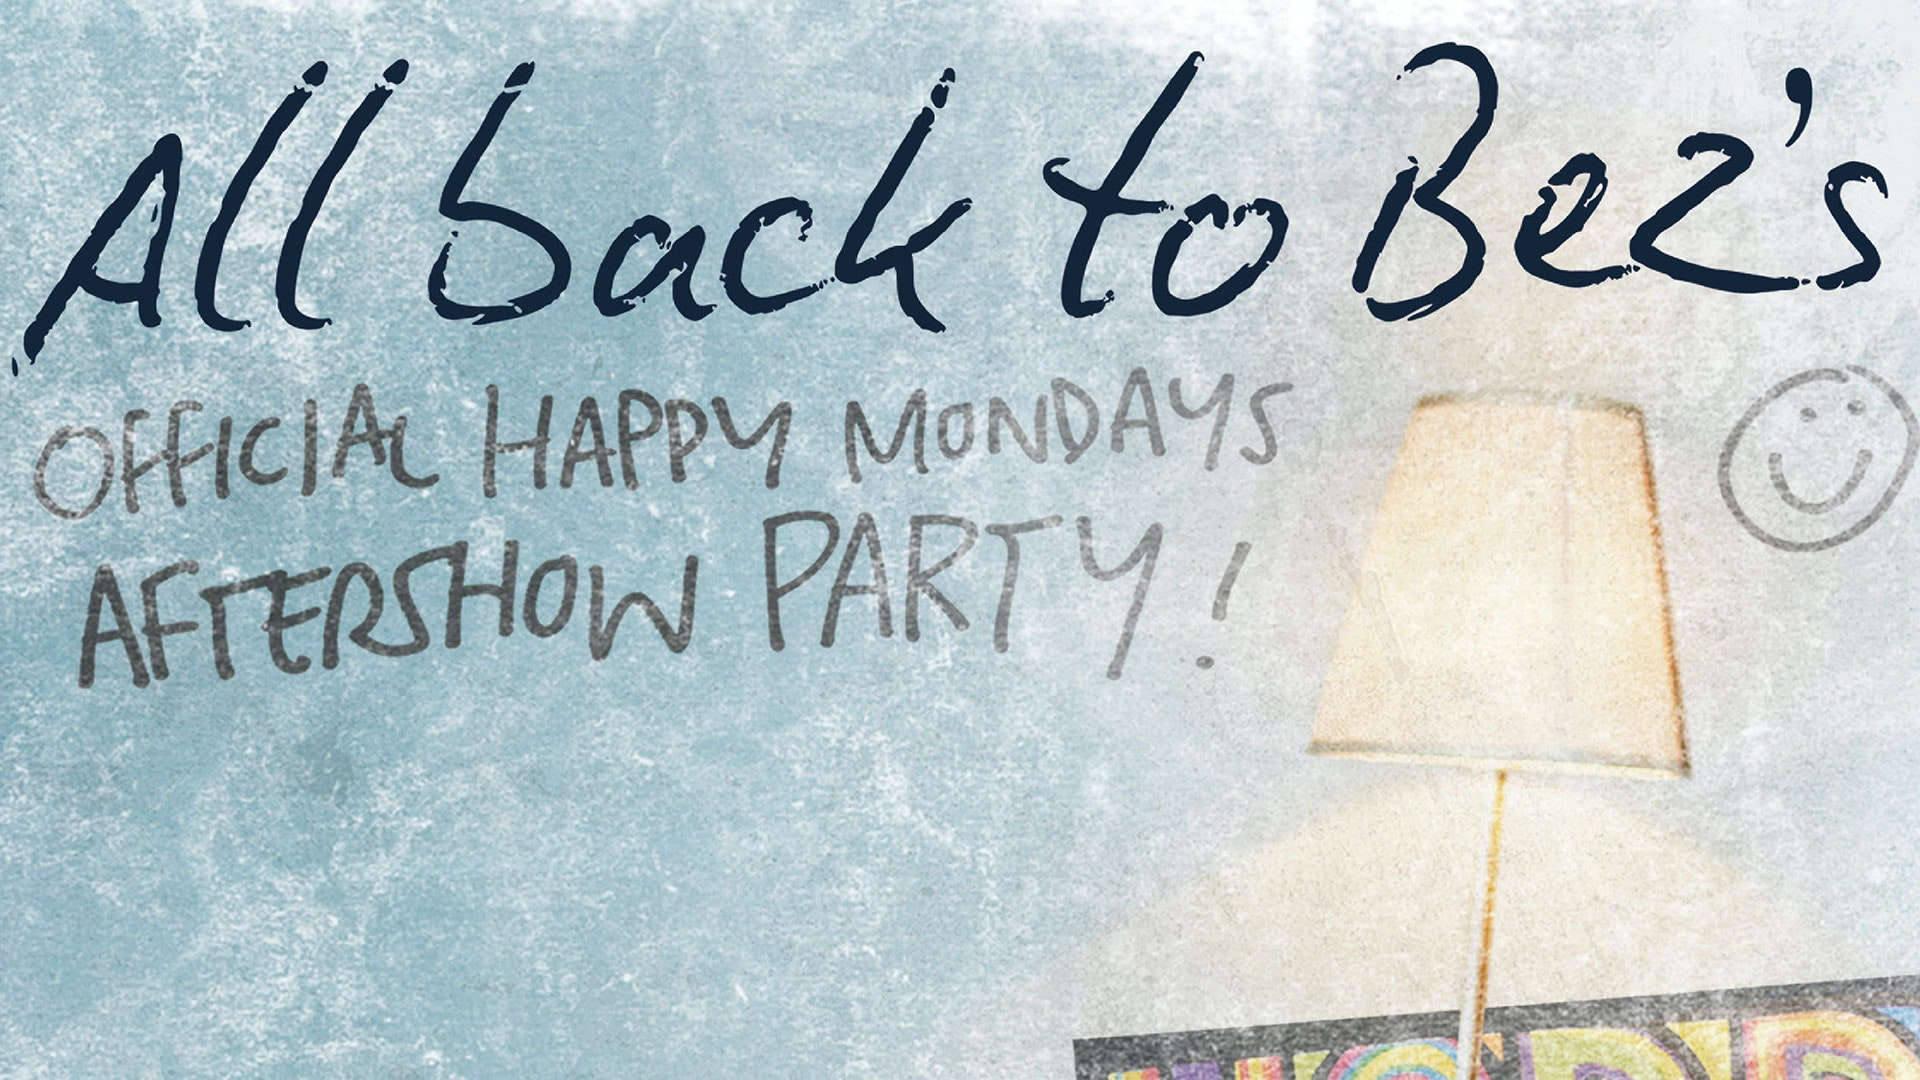 All Back to Bez's – Official Happy Mondays Aftershow